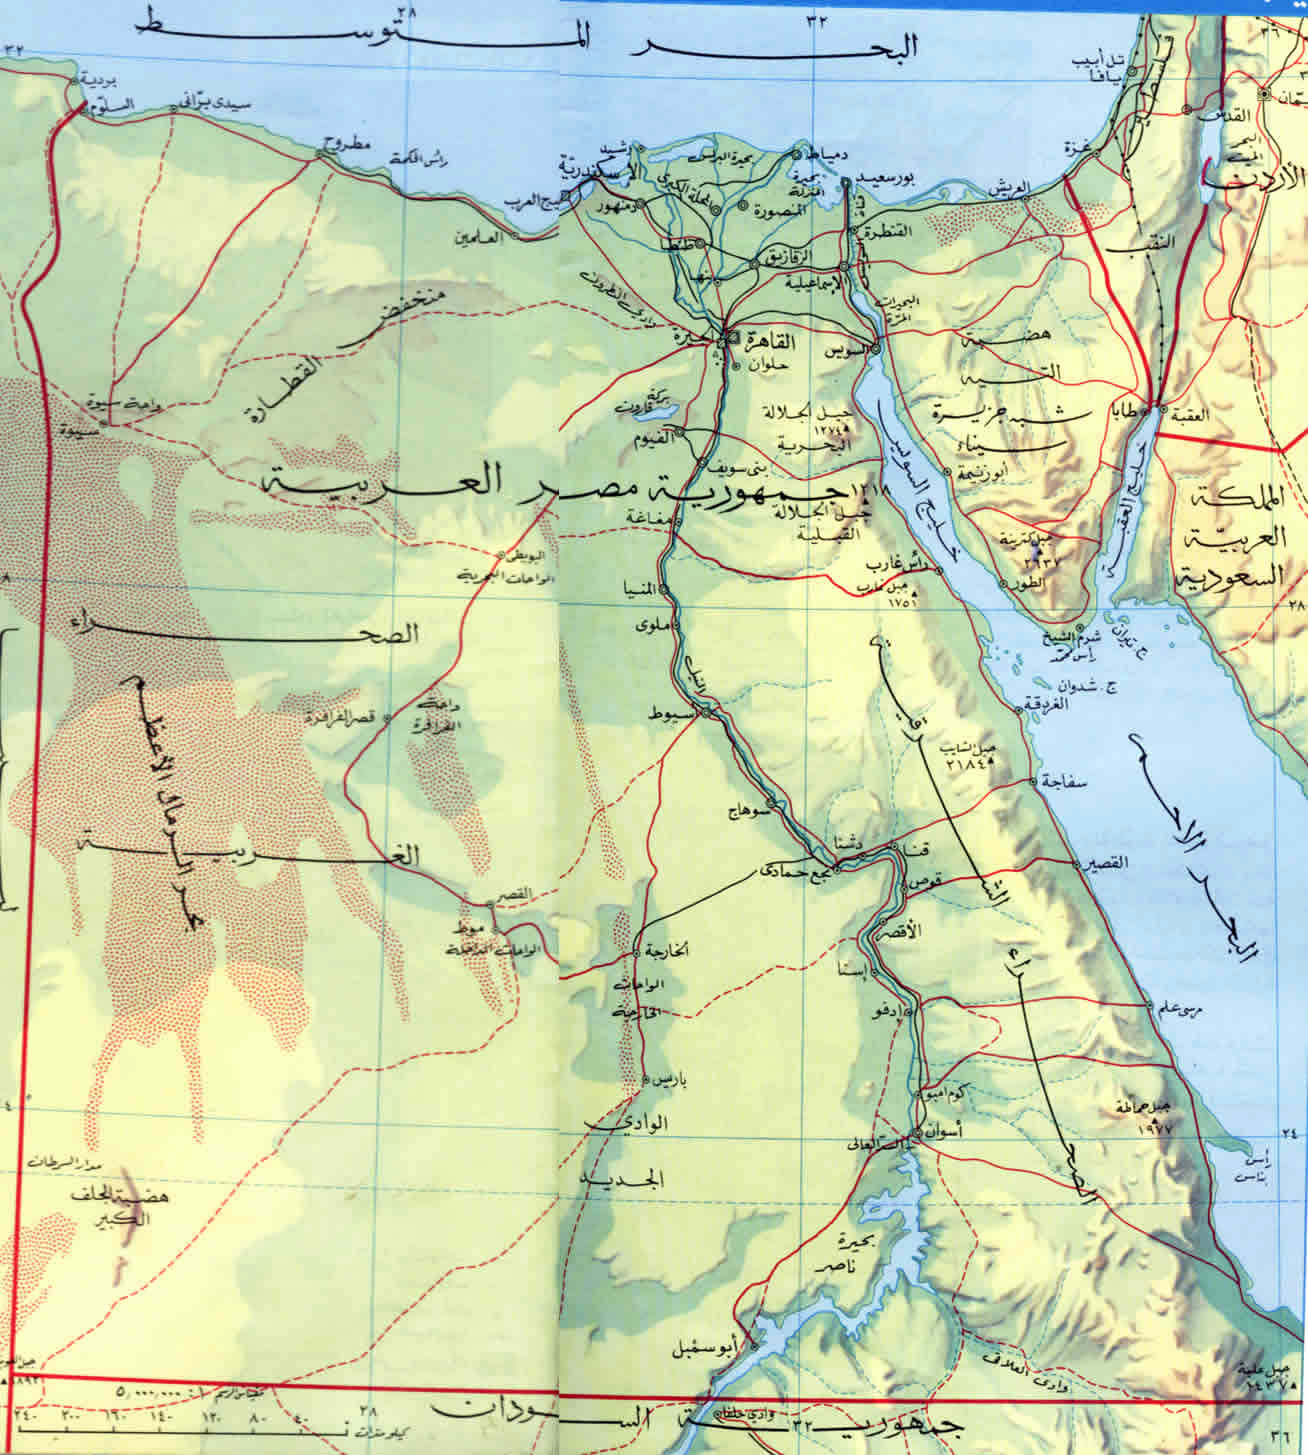 Large elevation map of egypt egypt africa mapsland maps of large elevation map of egypt gumiabroncs